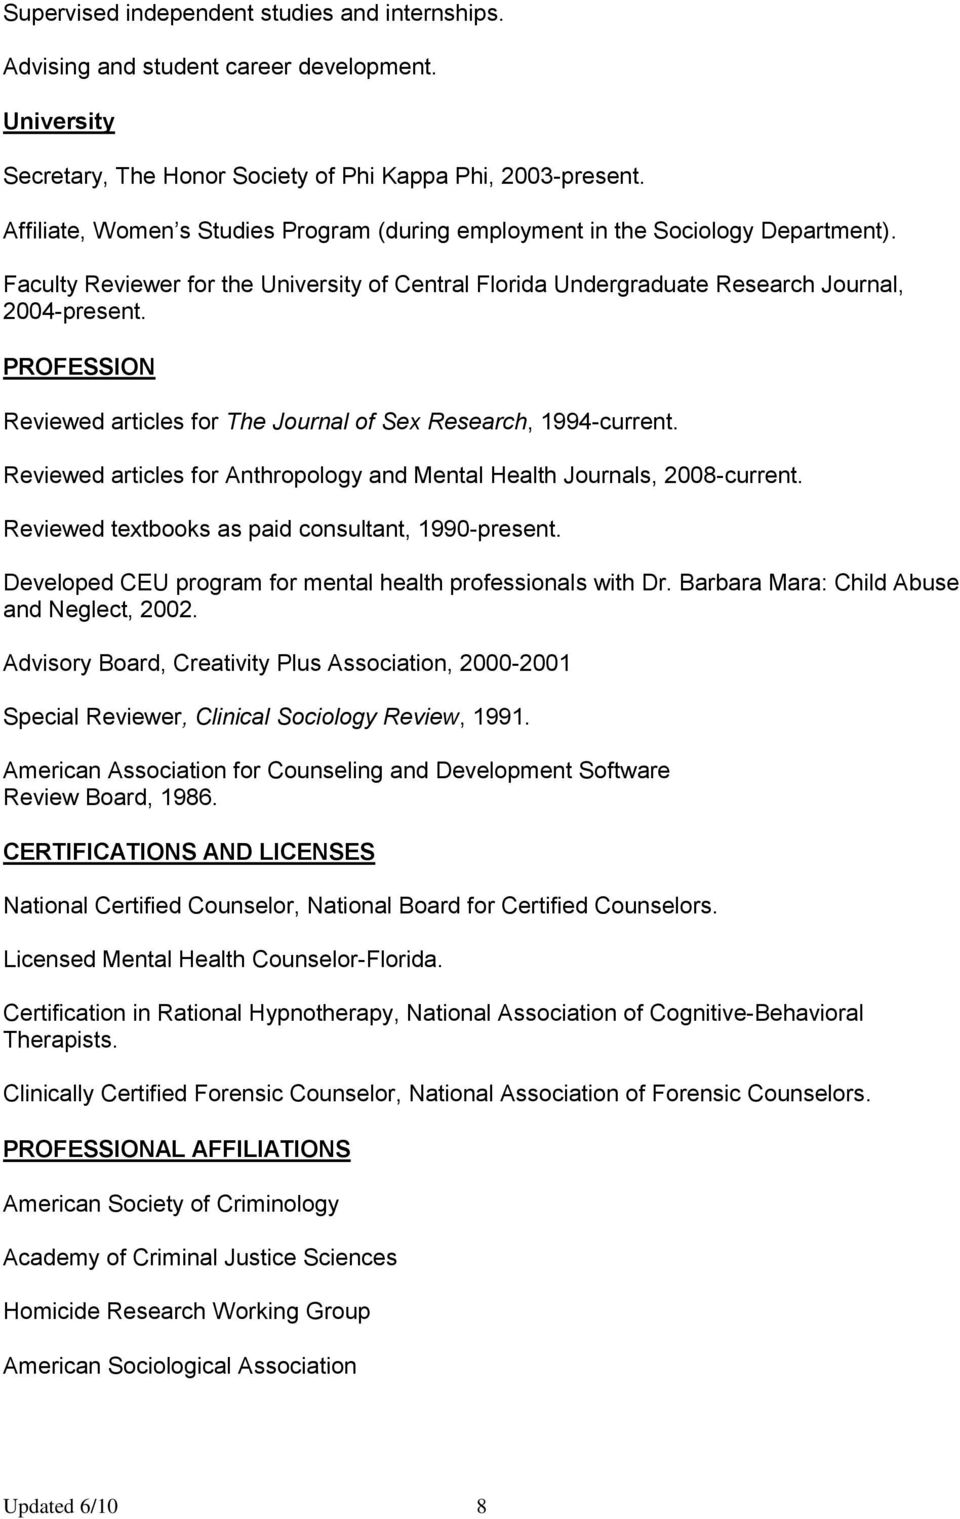 PROFESSION Reviewed articles for The Journal of Sex Research, 1994-current. Reviewed articles for Anthropology and Mental Health Journals, 2008-current.